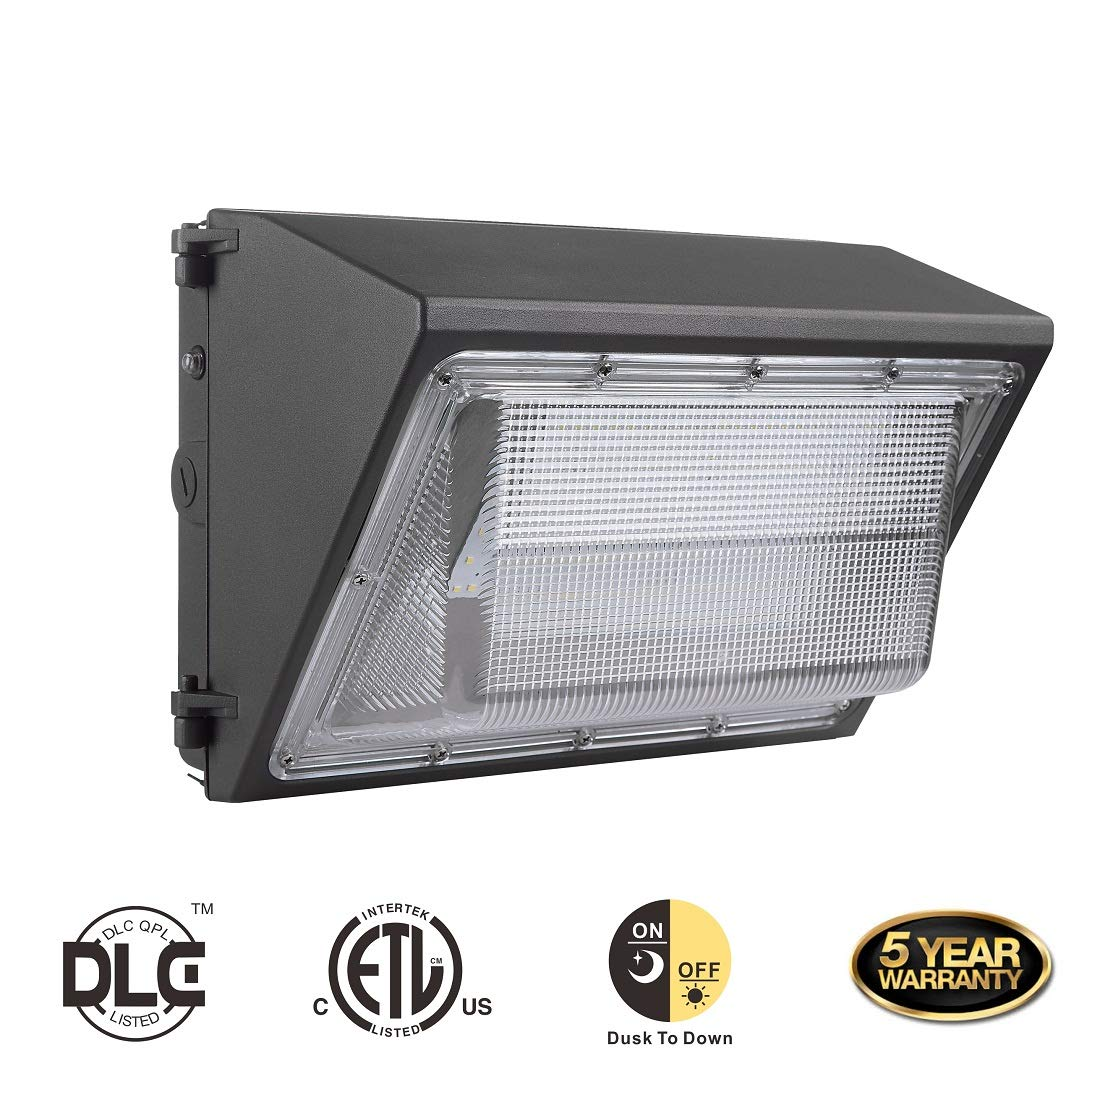 DE-Power 60W LED Wall Pack Light Fixture with Dusk-to-dawn Photocell,HPS/HID Replacement, 5000K,IP65 Waterproof, Outdoor Industrial/Commercial Area Light